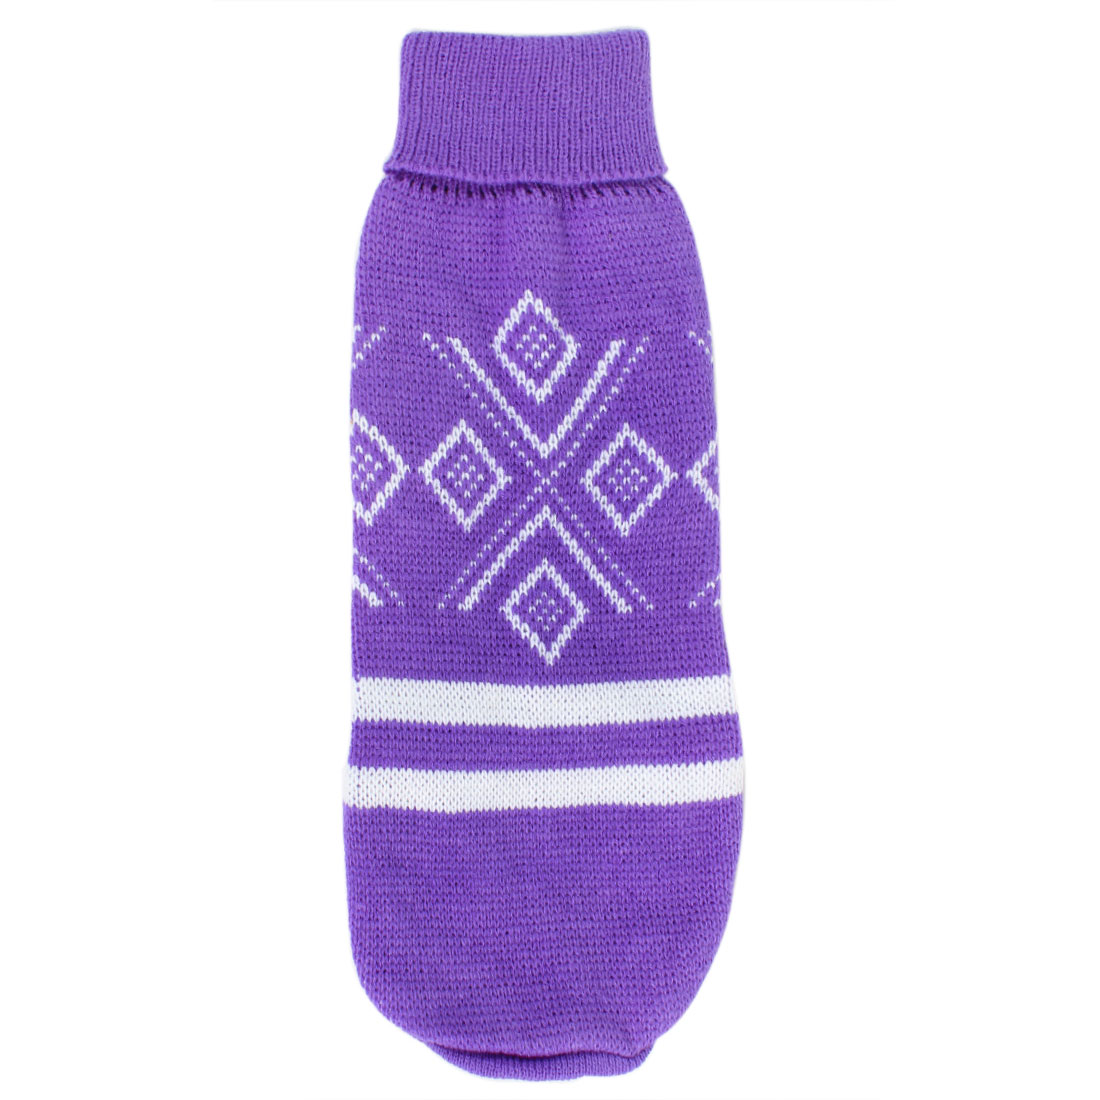 Pet Puppy Rhombus Pattern Turtleneck Warm Apparel Knitwear Sweater Clothes Purple Size XS